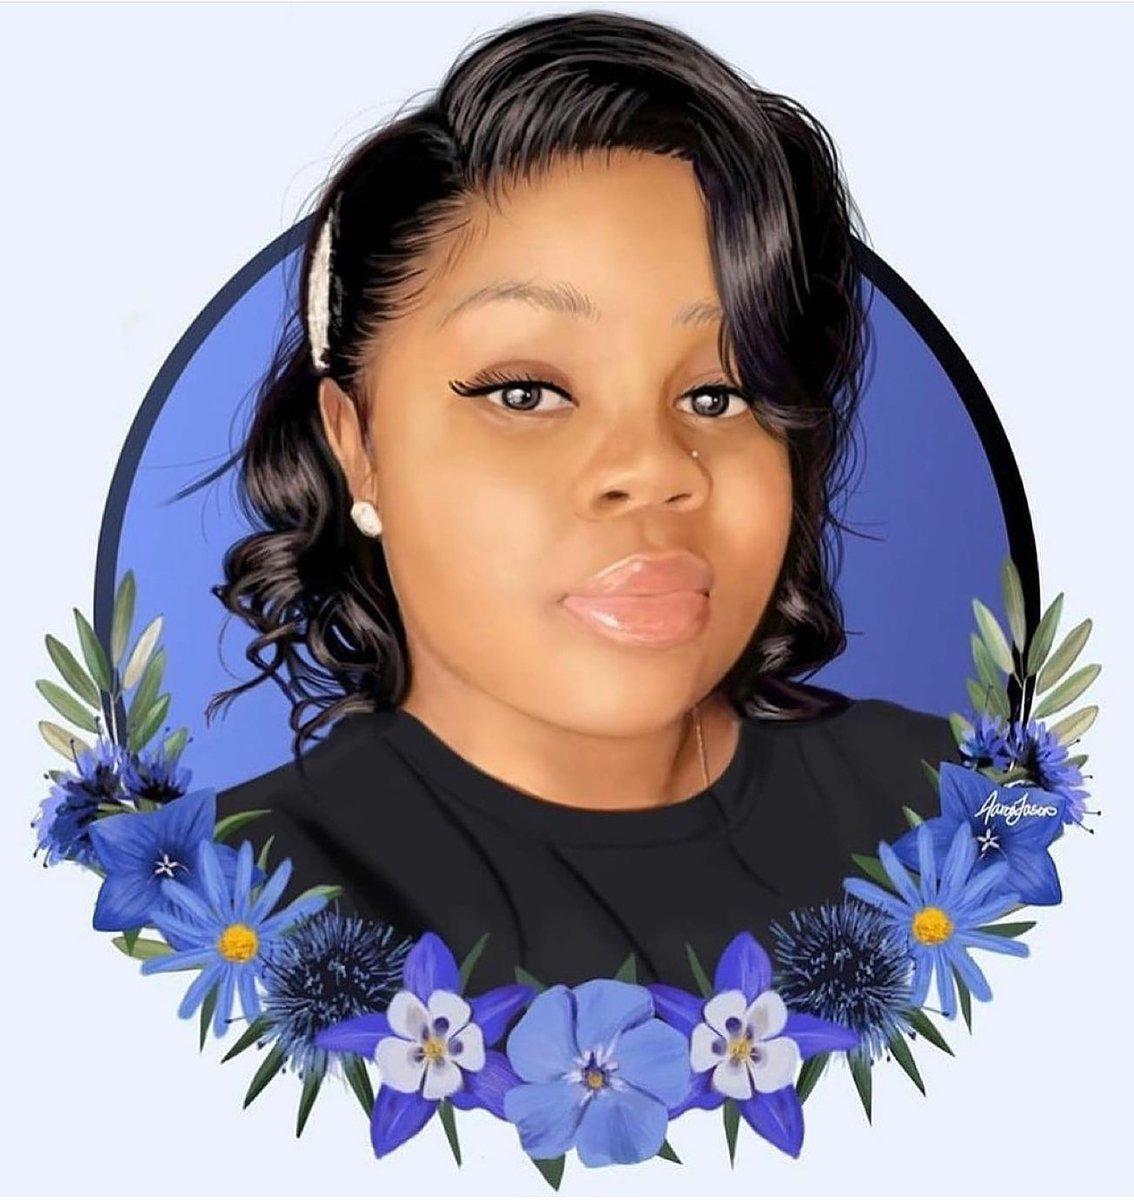 Happy heavenly birthday Breonna!! We will never forget. We will always keep fighting.❤🙏🏿 https://t.co/hgqikJbhrd